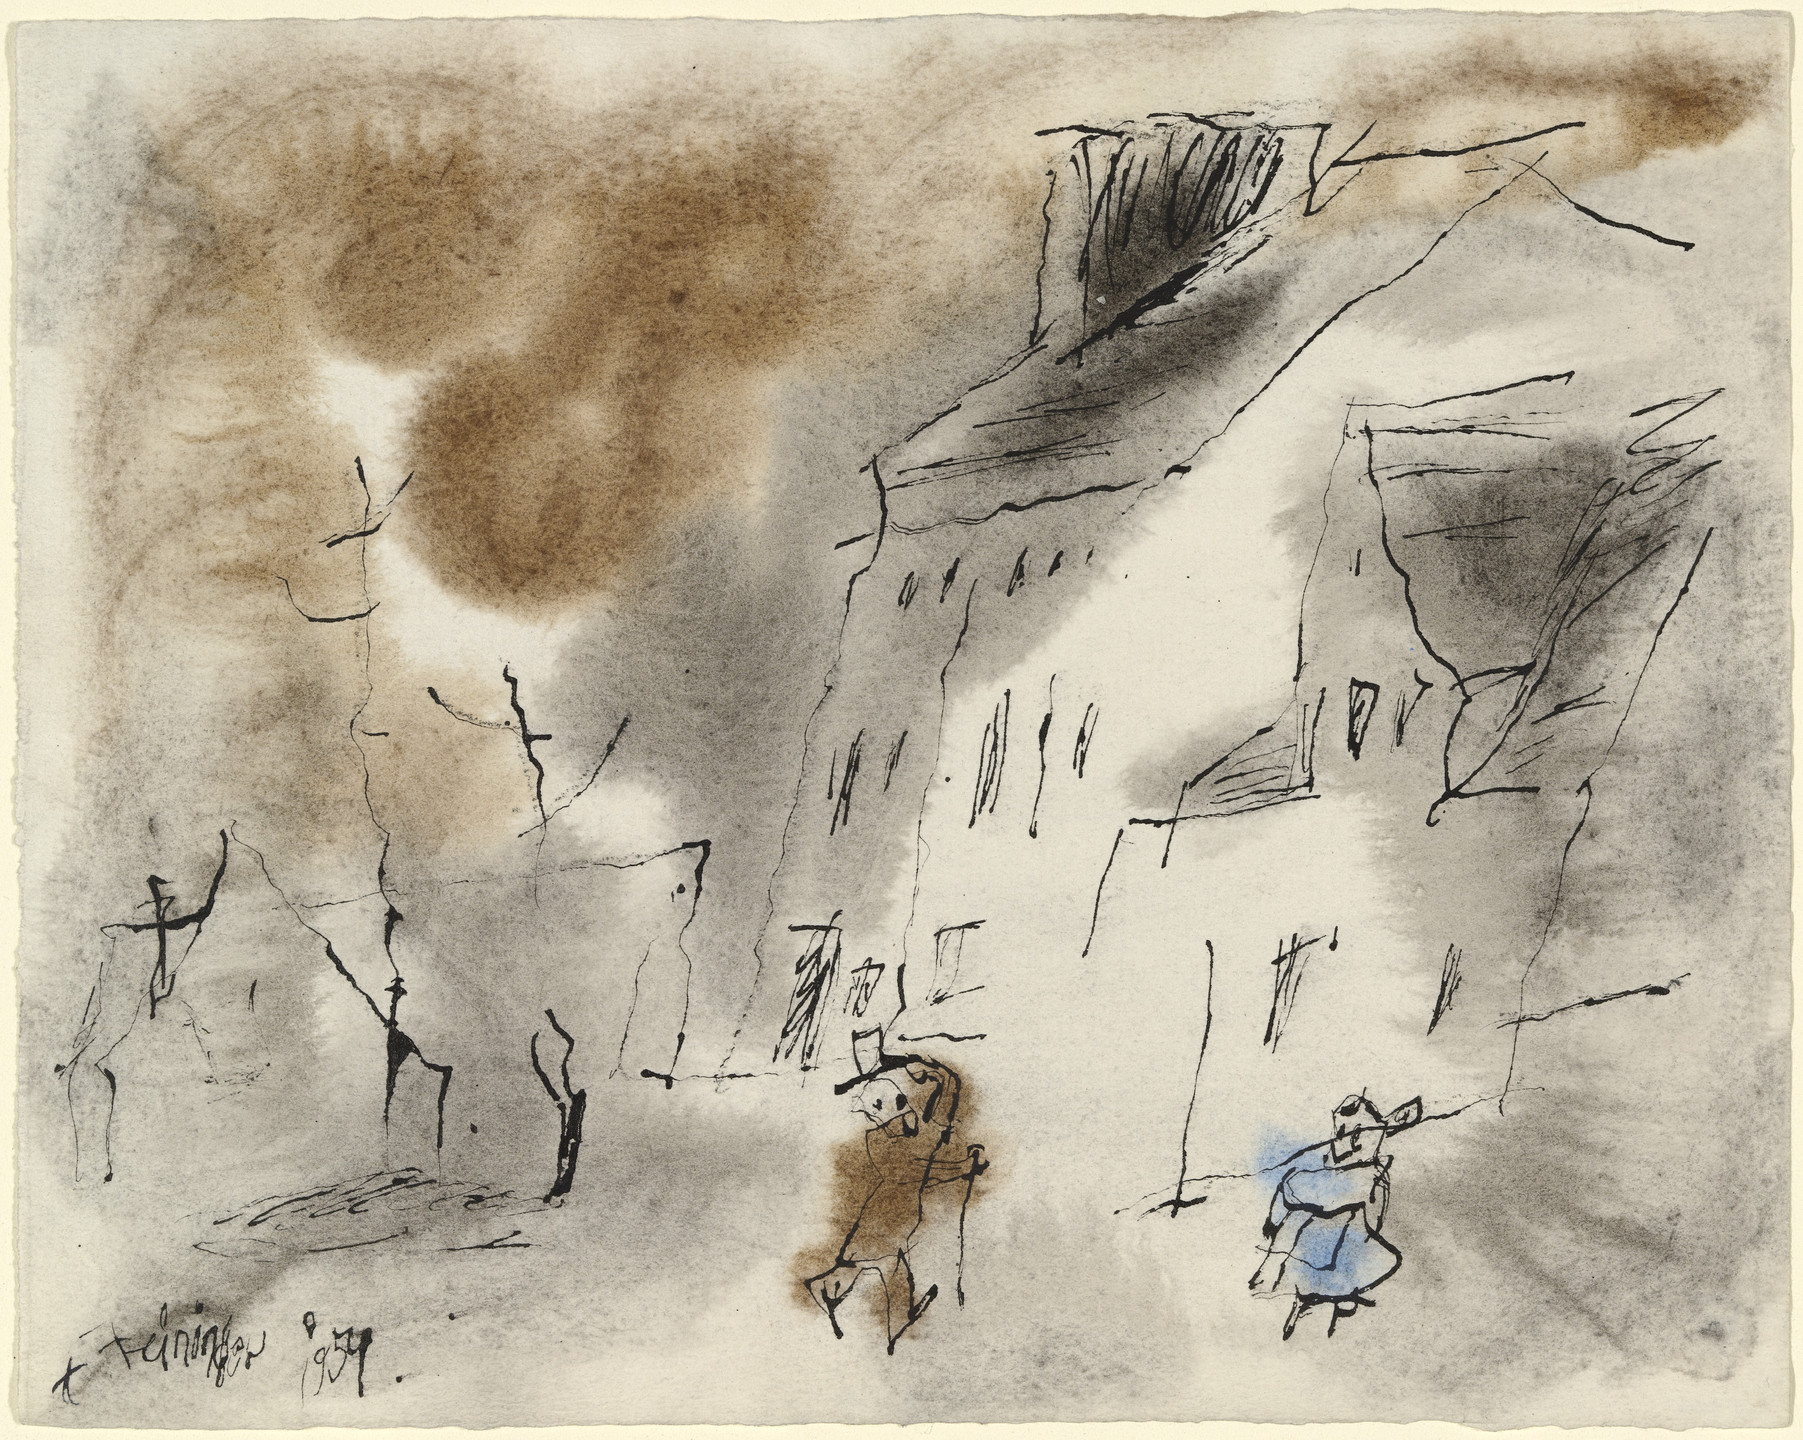 Lyonel Feininger. Untitled. 1954